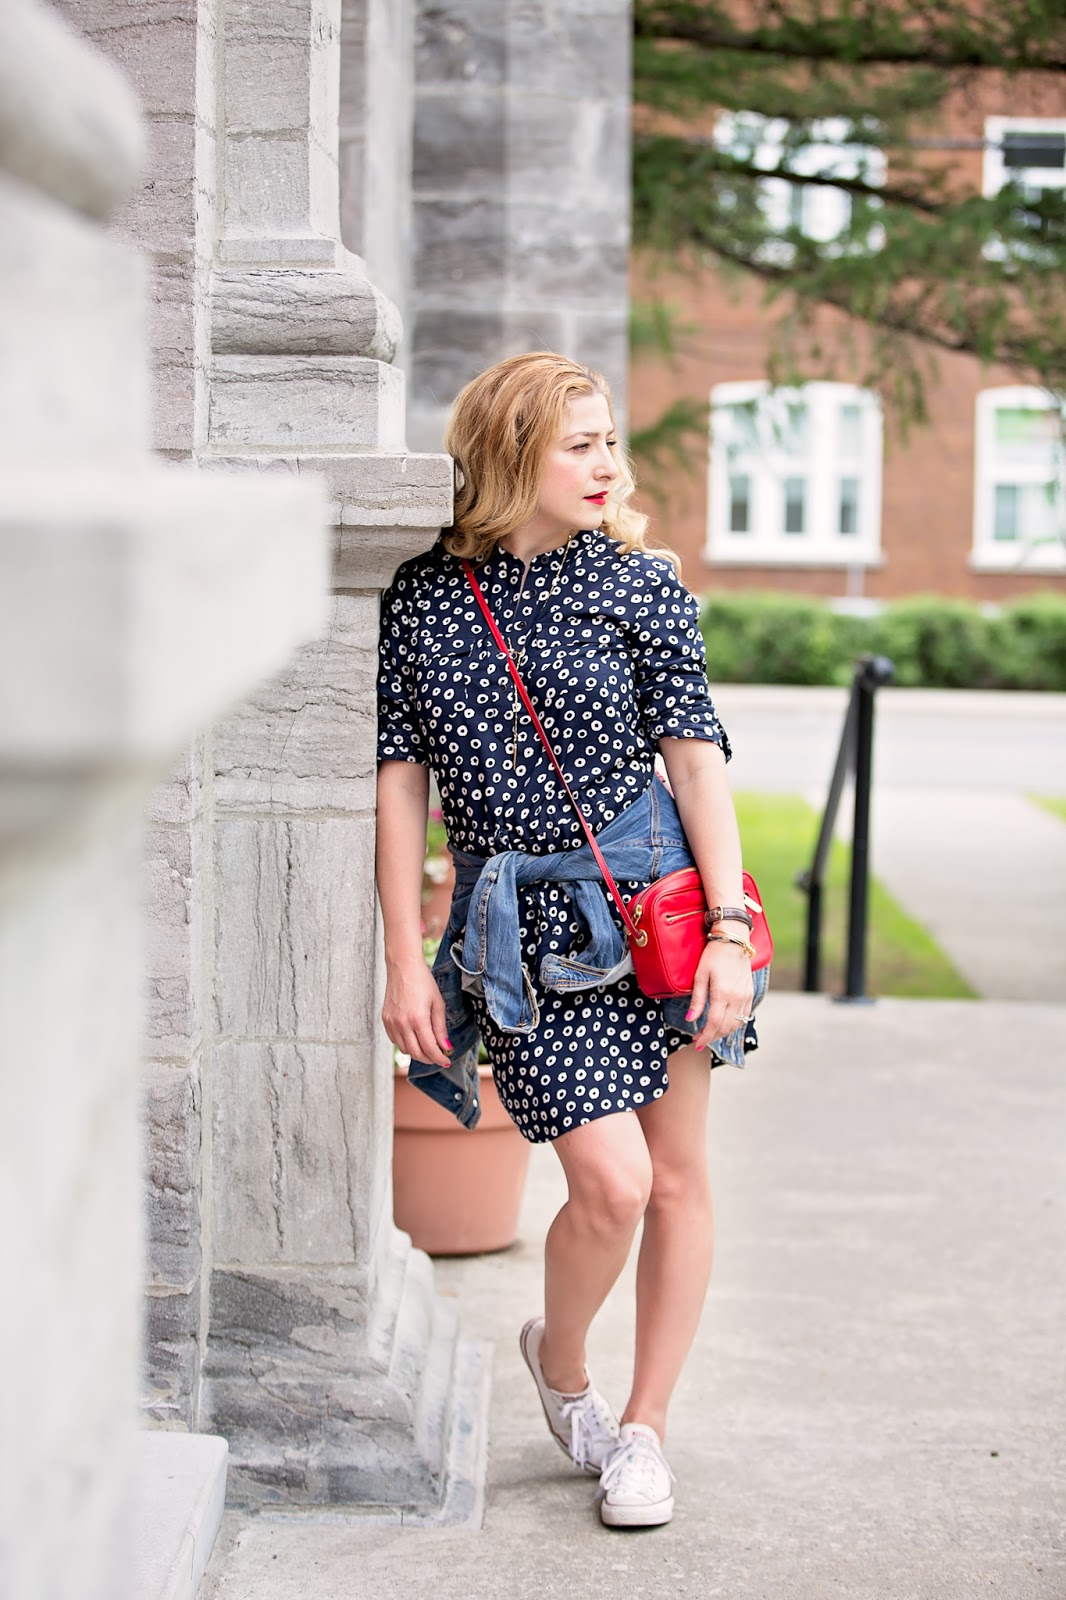 ooh la la shirtdress